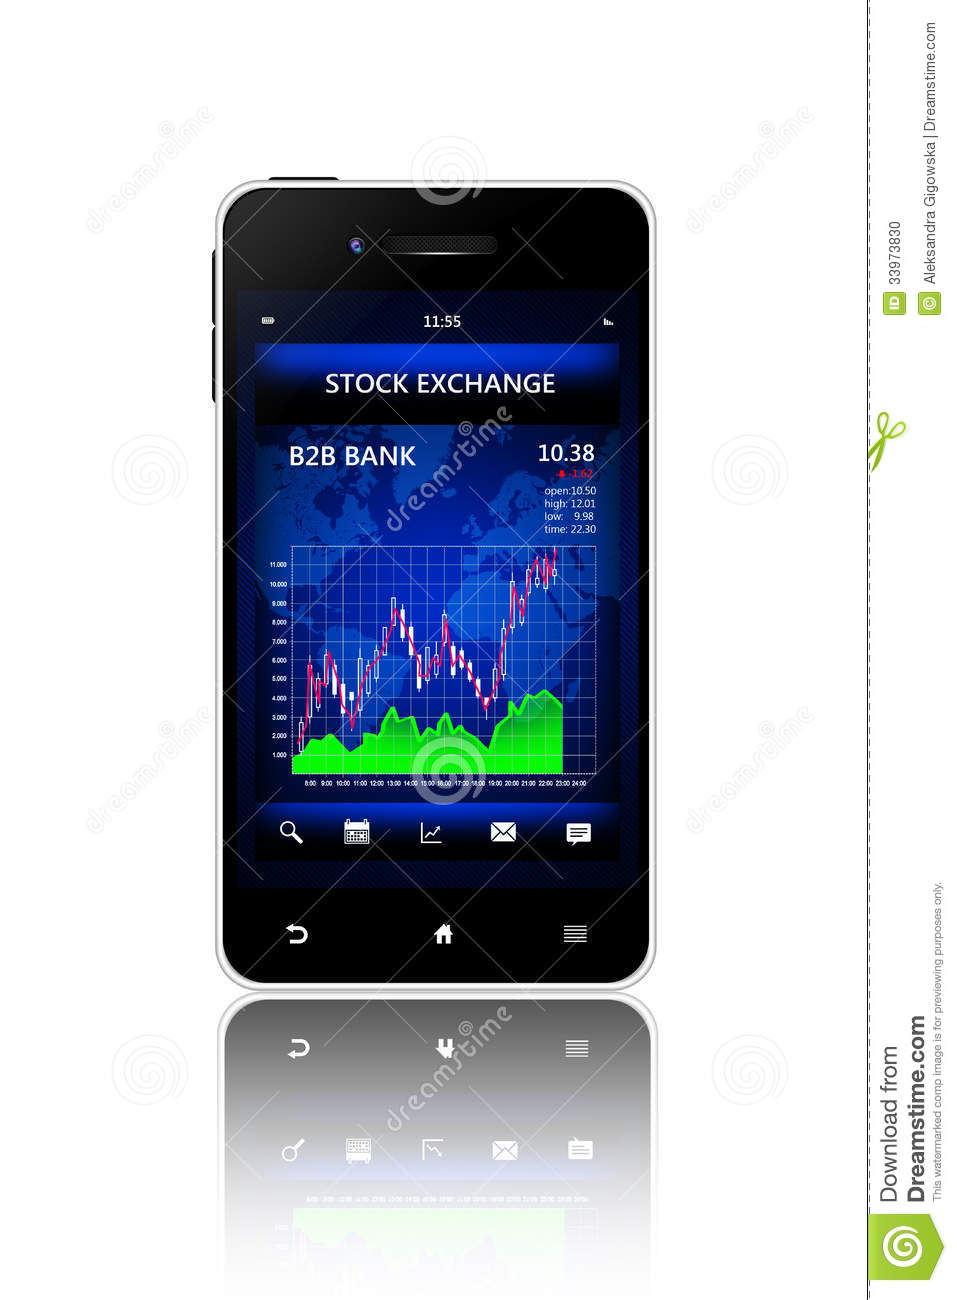 Can We Do Online Stock Trading Through A Smartphone?